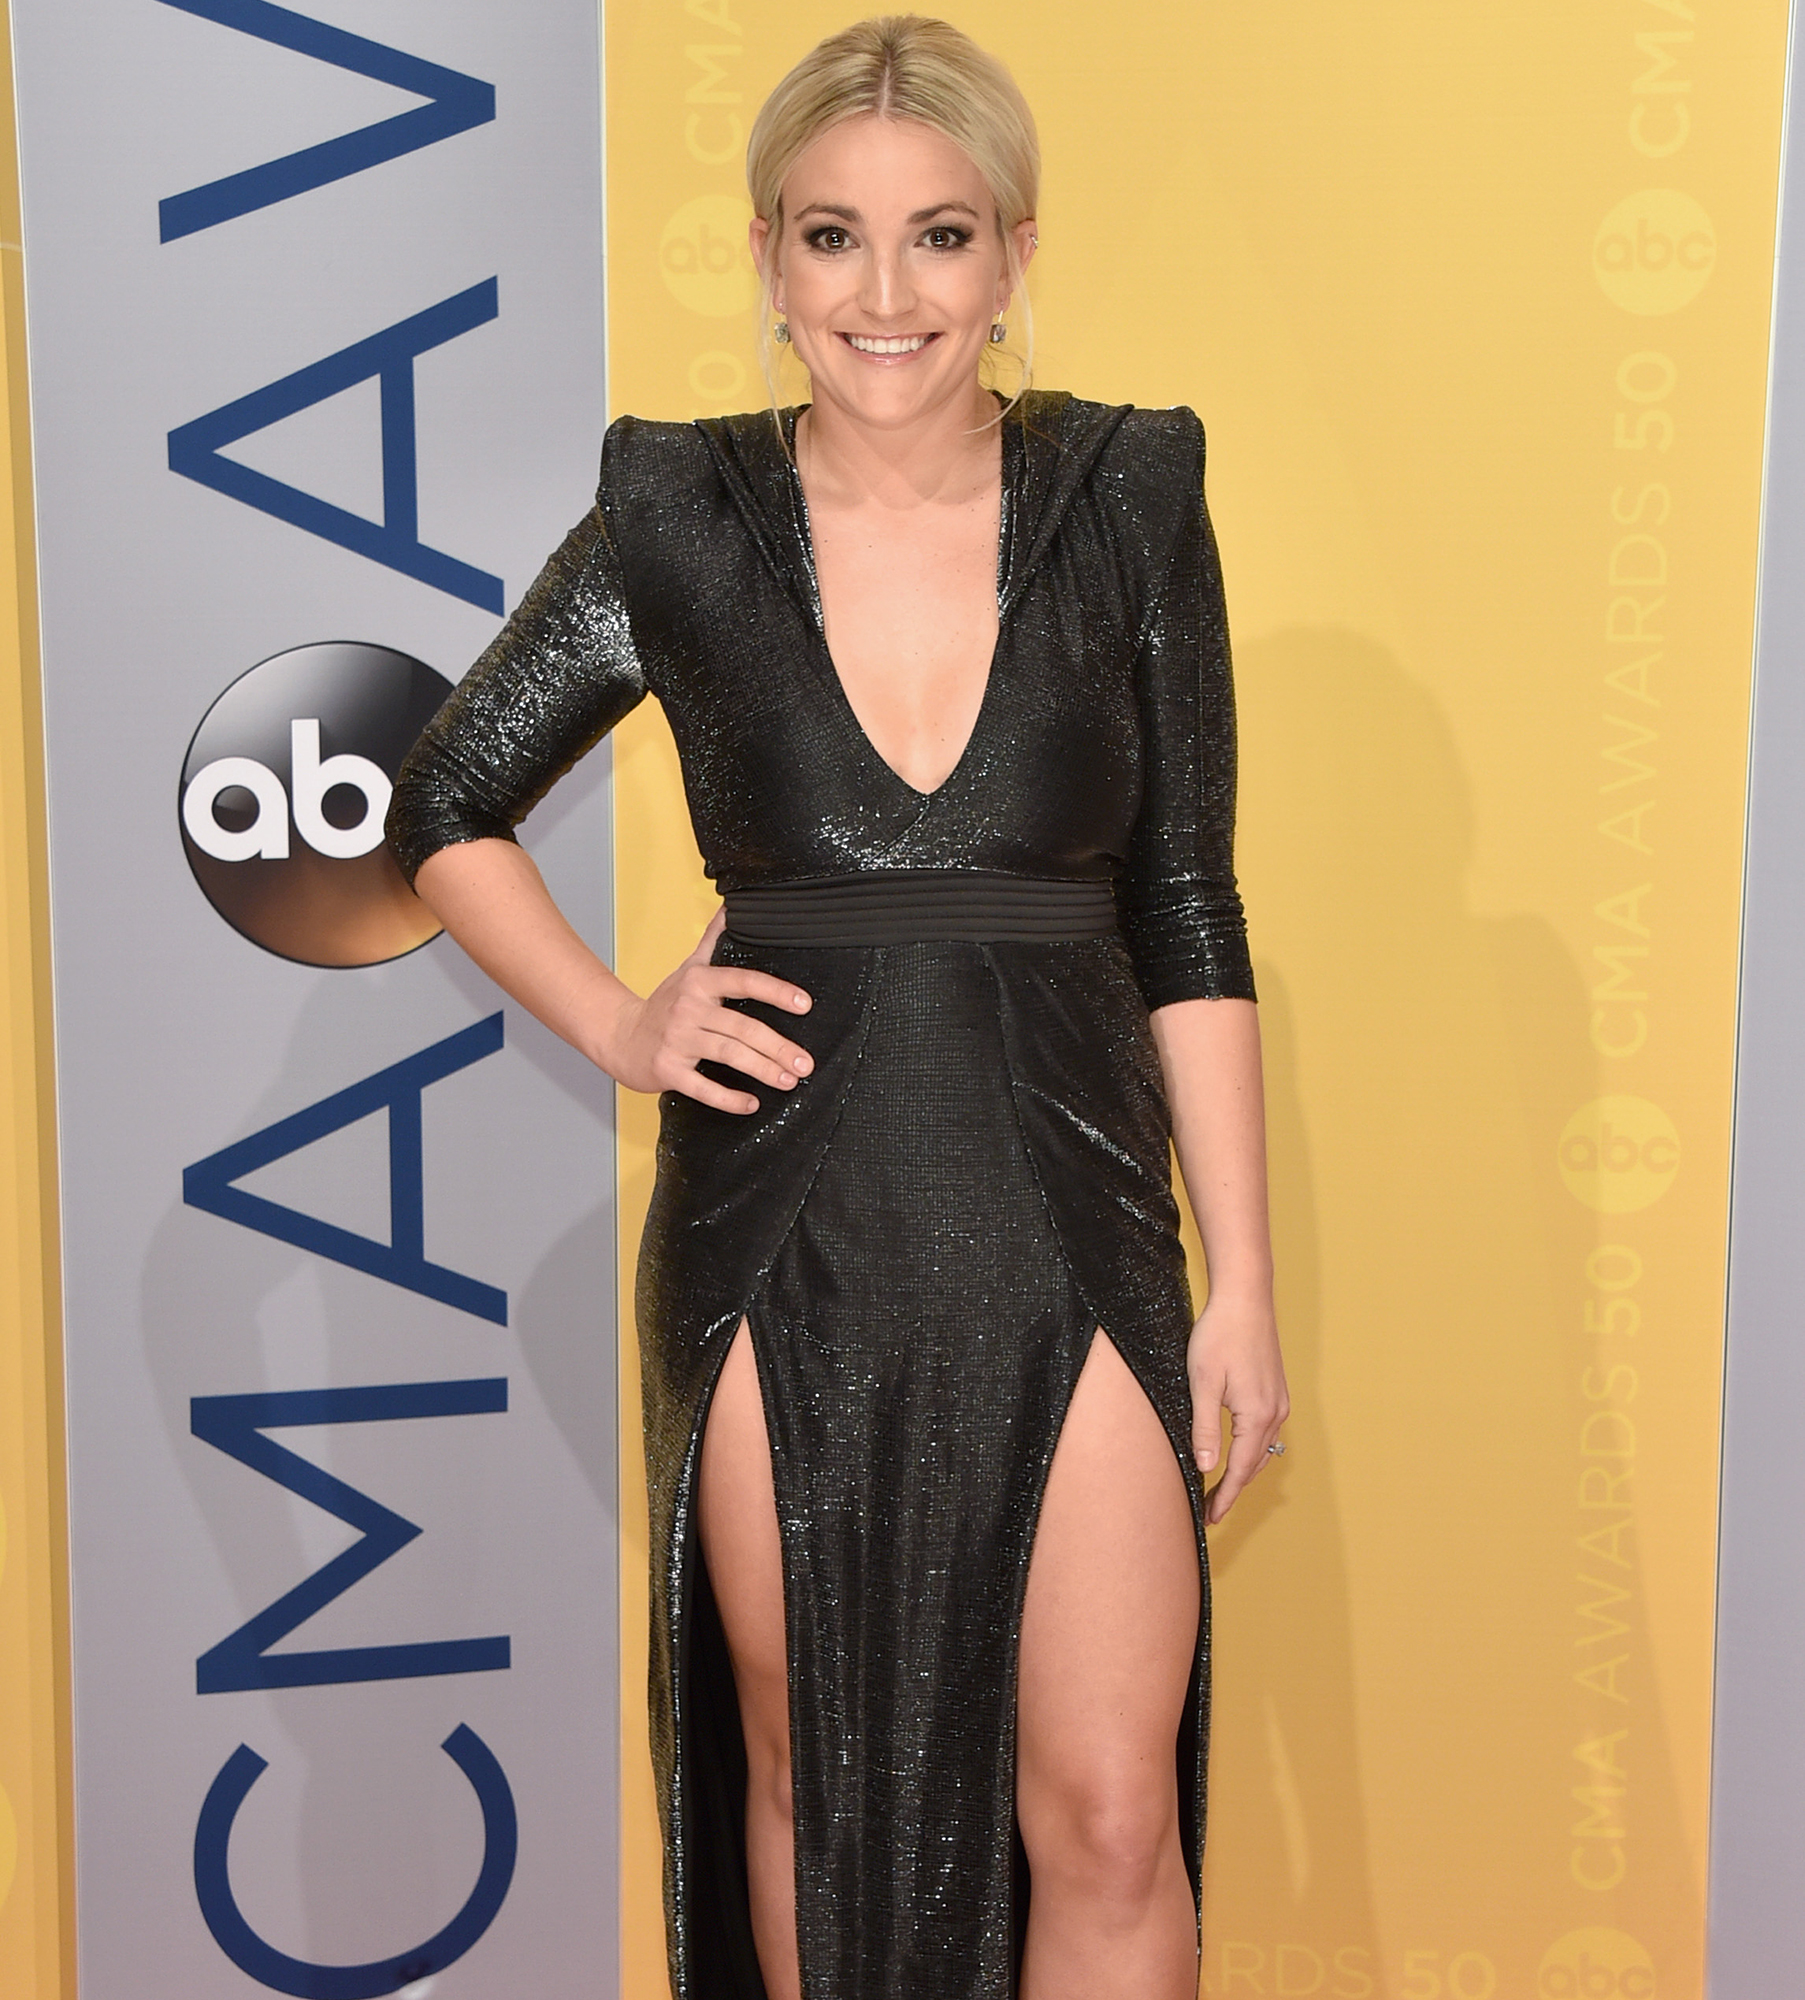 Jamie Lynn Spears Denies Zoey 101 Ended Due to Her Pregnancy - Jamie Lynn Spears attends the 50th annual CMA Awards at the Bridgestone Arena on November 2, 2016 in Nashville, Tennessee.